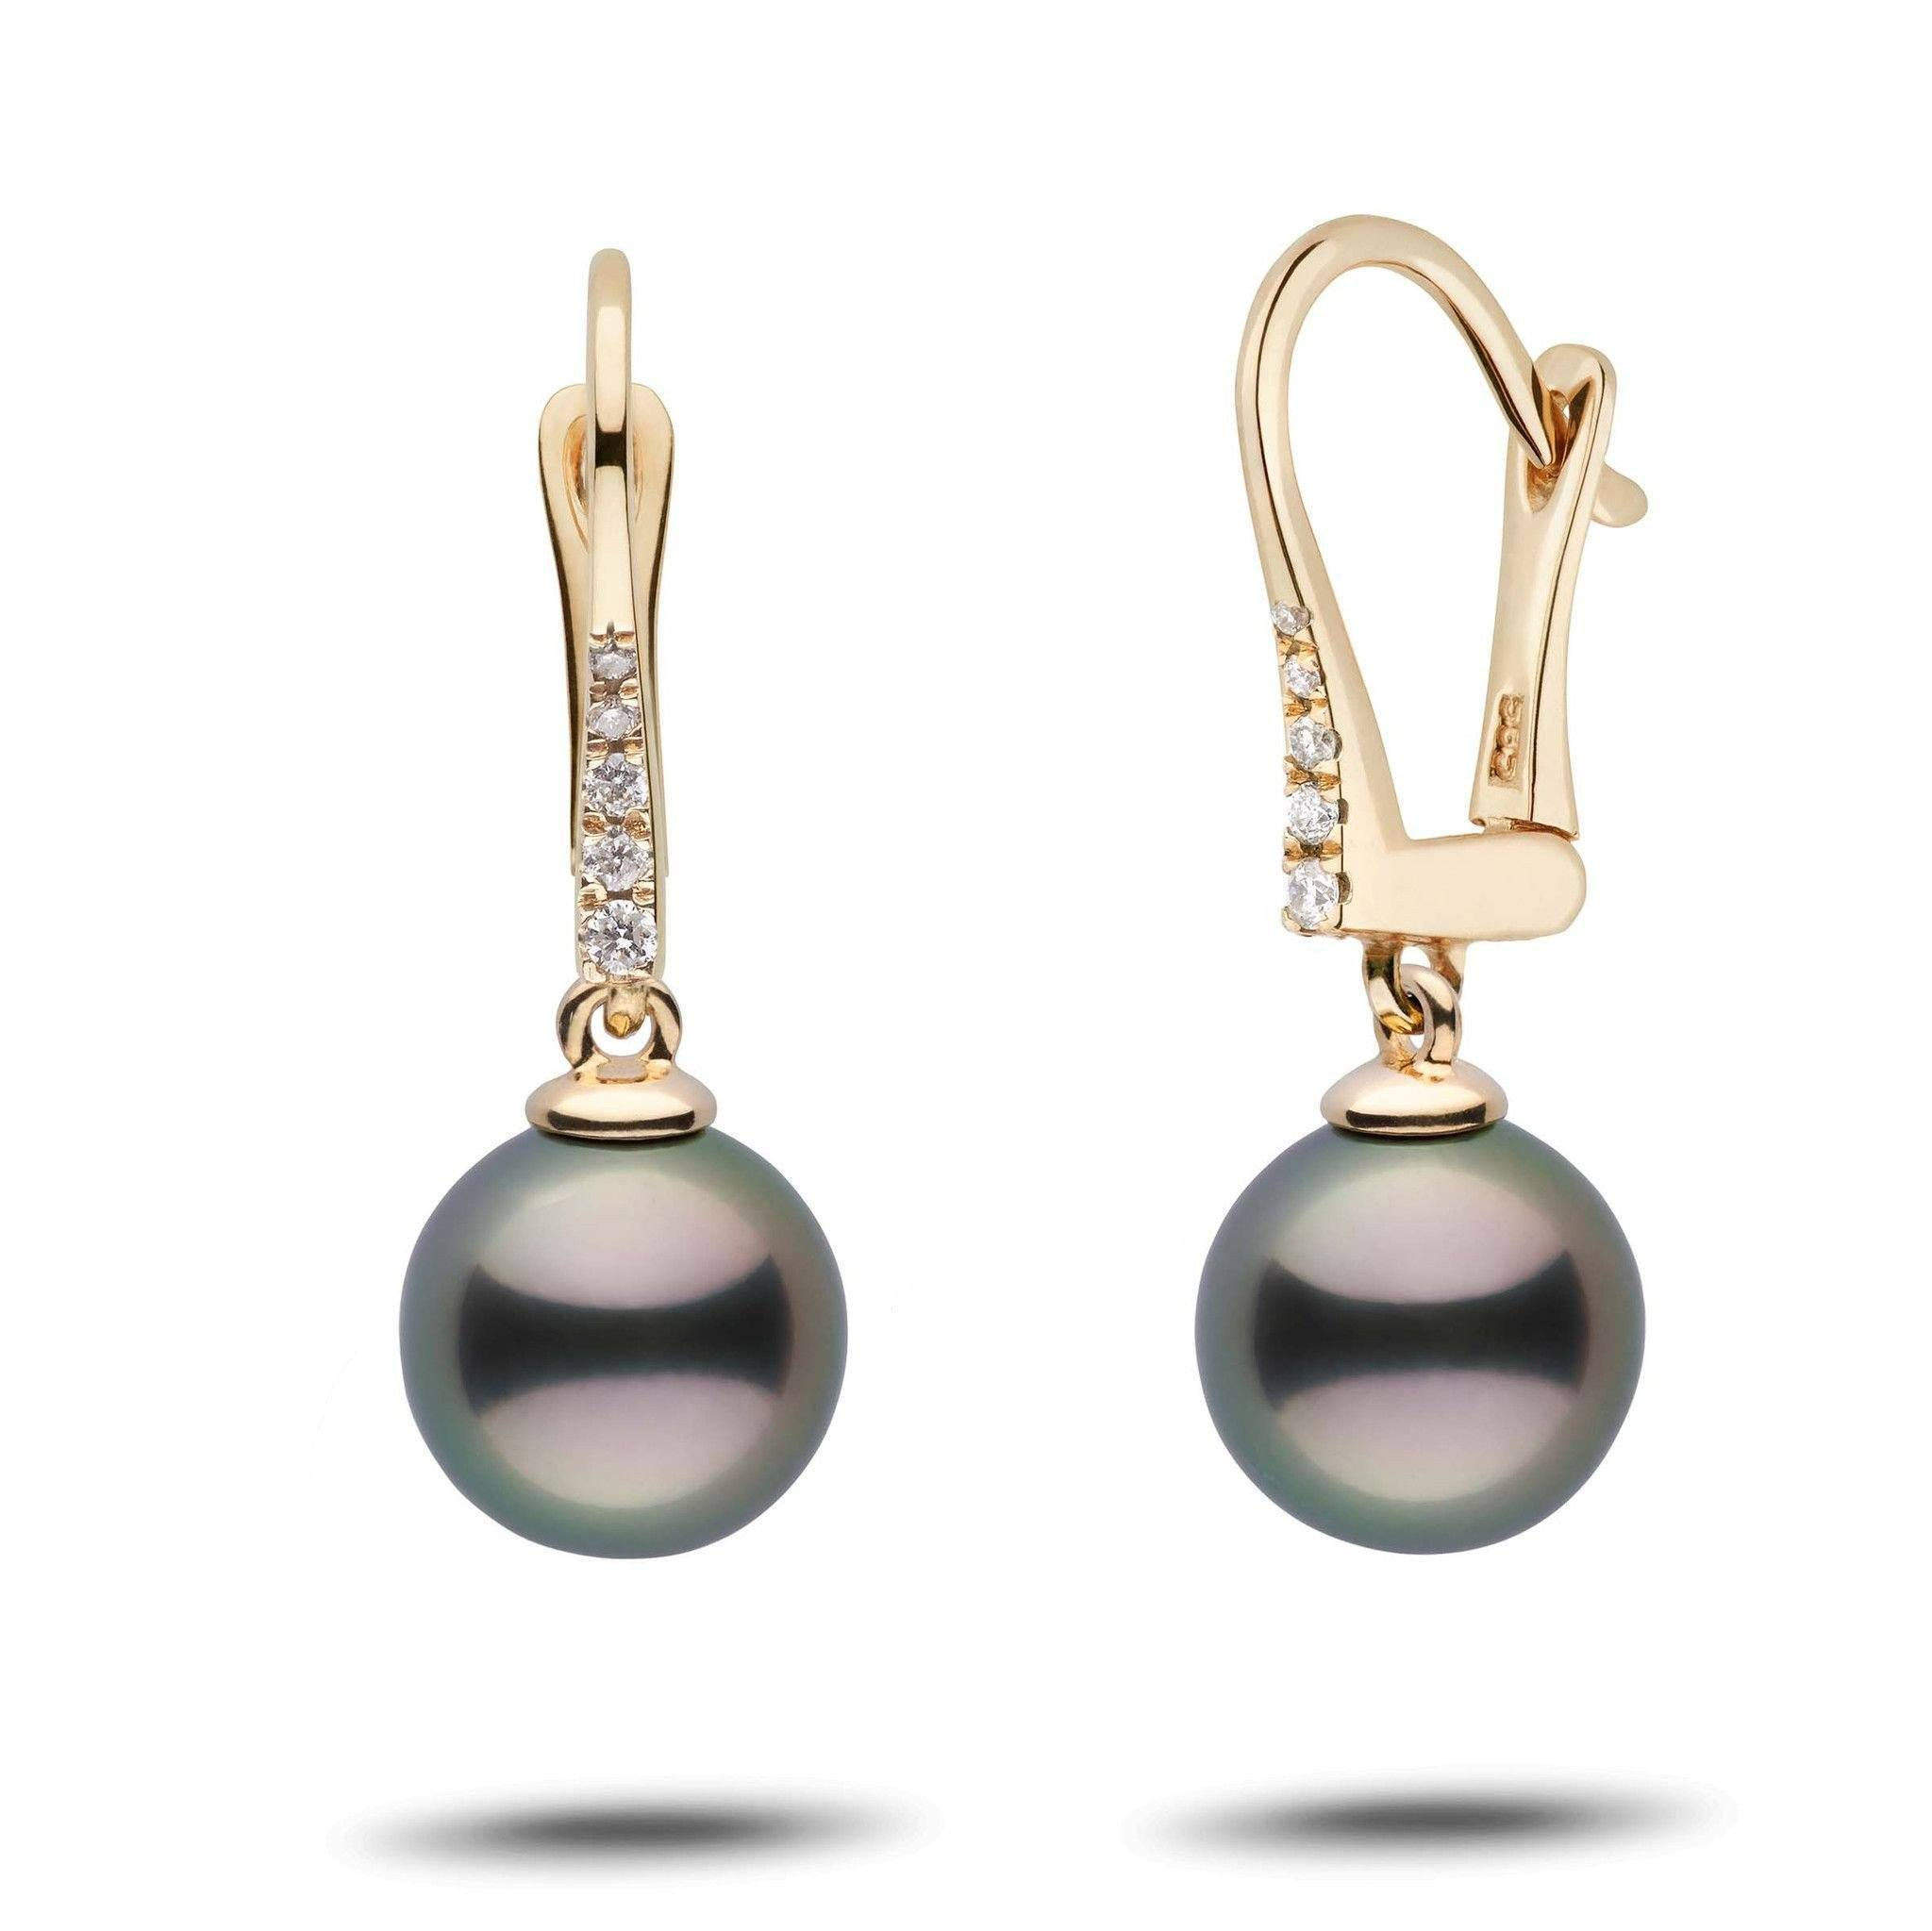 Allure Collection Tahitian 9.0-10.0 mm Pearl & Diamond Dangle Earrings